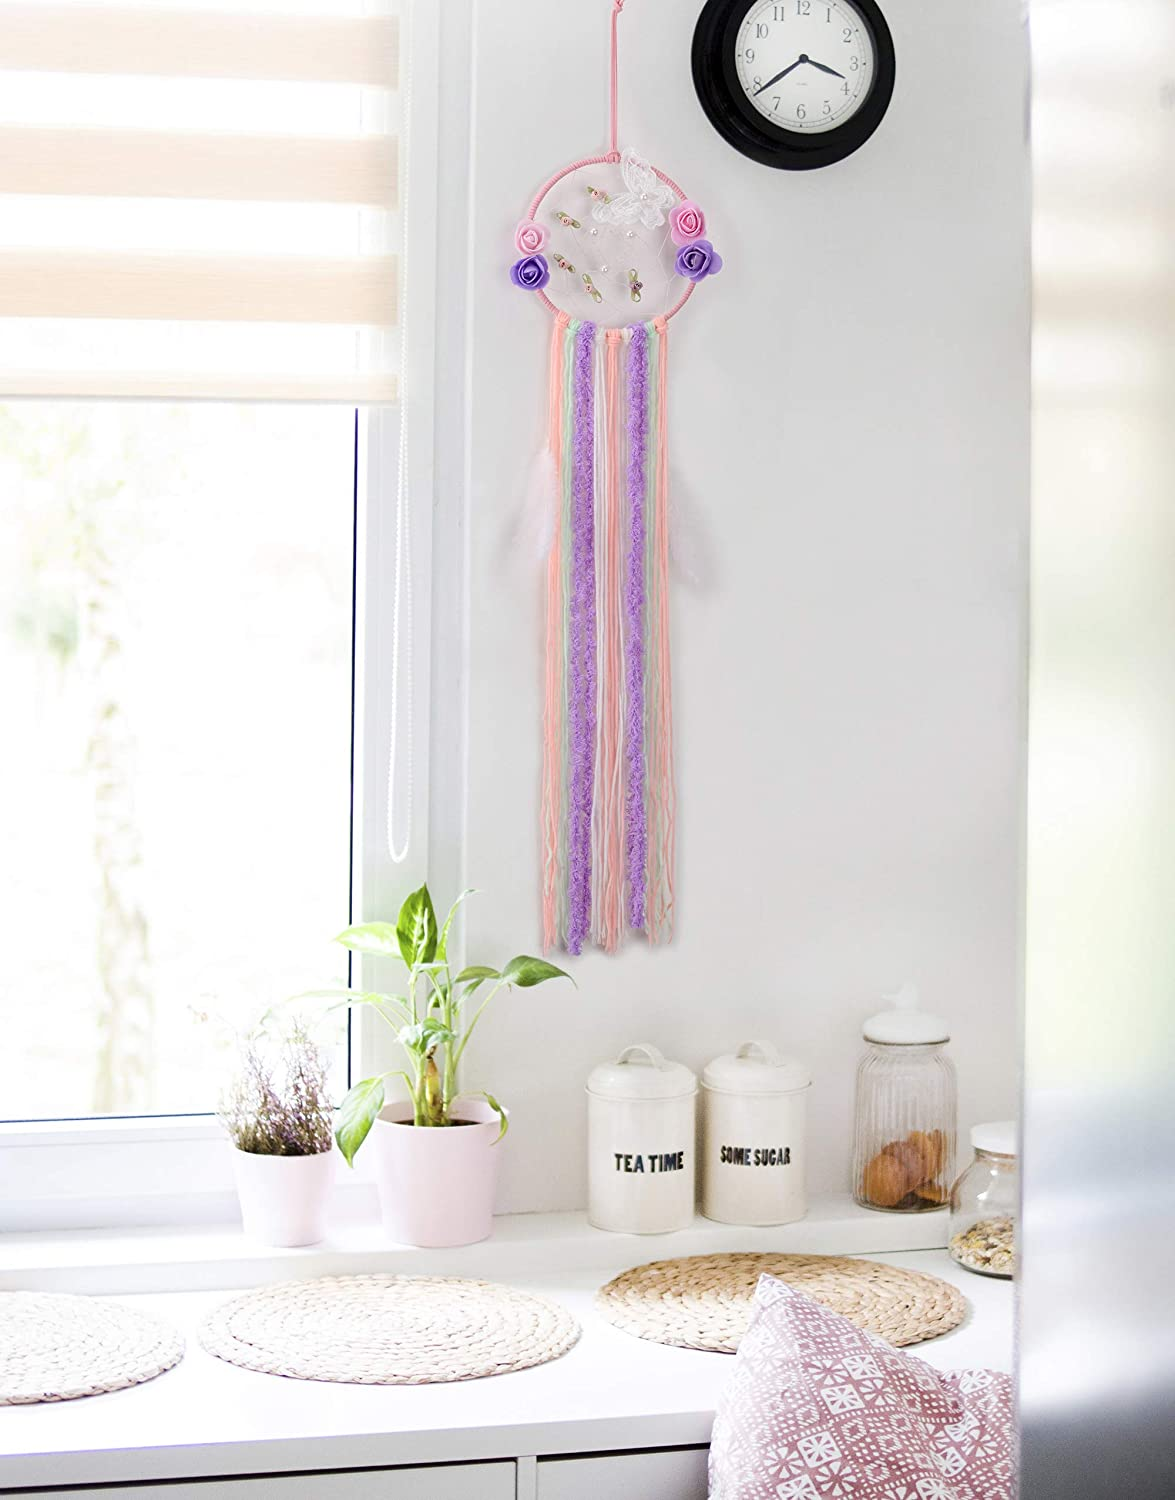 Positive Dreams These Dream Catchers Makes Your Kids Have Creative Mind Crafts for Girls Ages 8-12. Make Your own Dream Catcher and for Room d/écor JMS DIY Dream Catcher Art kit Set